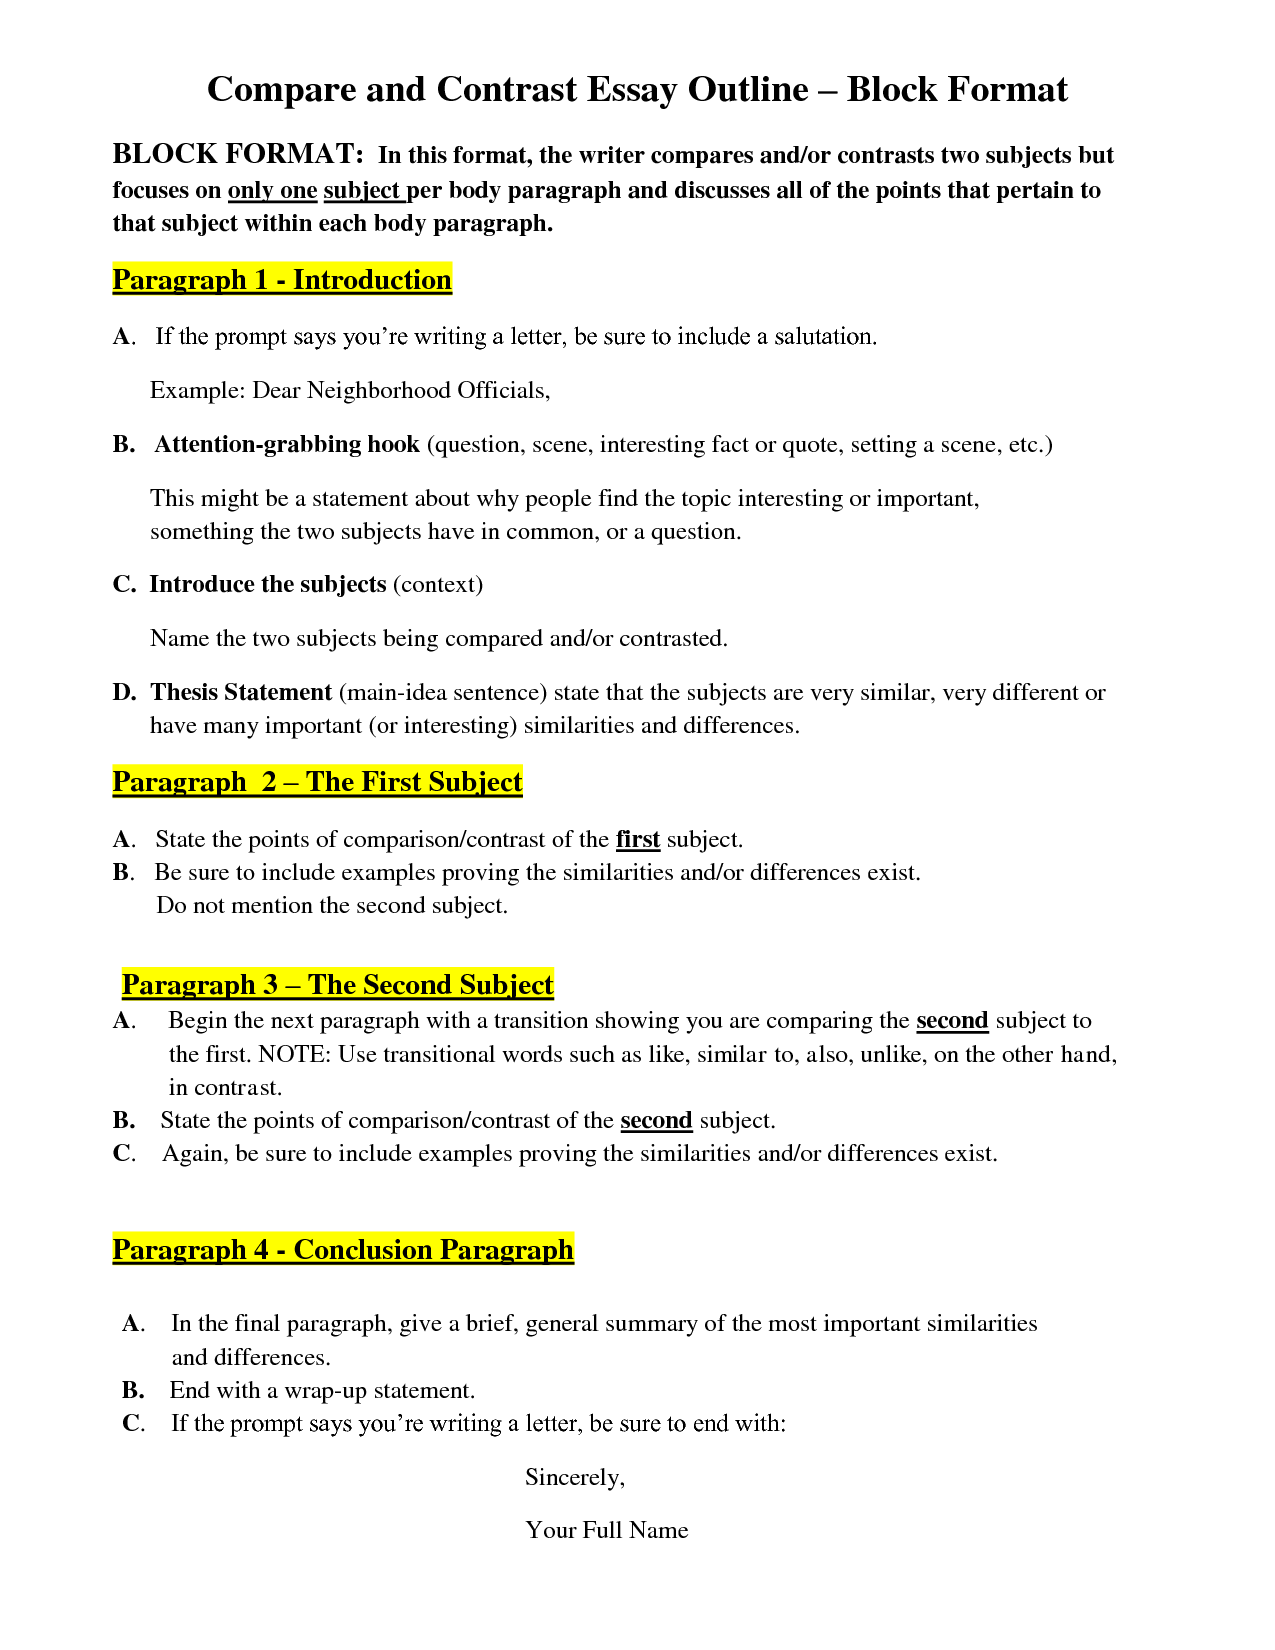 014 How To Write An Essay On Themeample Plan Image Writing English Start Any Letter Sample In Literature Comparison Conclusion Book Literary Analysis Common Based Fantastic Theme A The Of Poem Novel Full